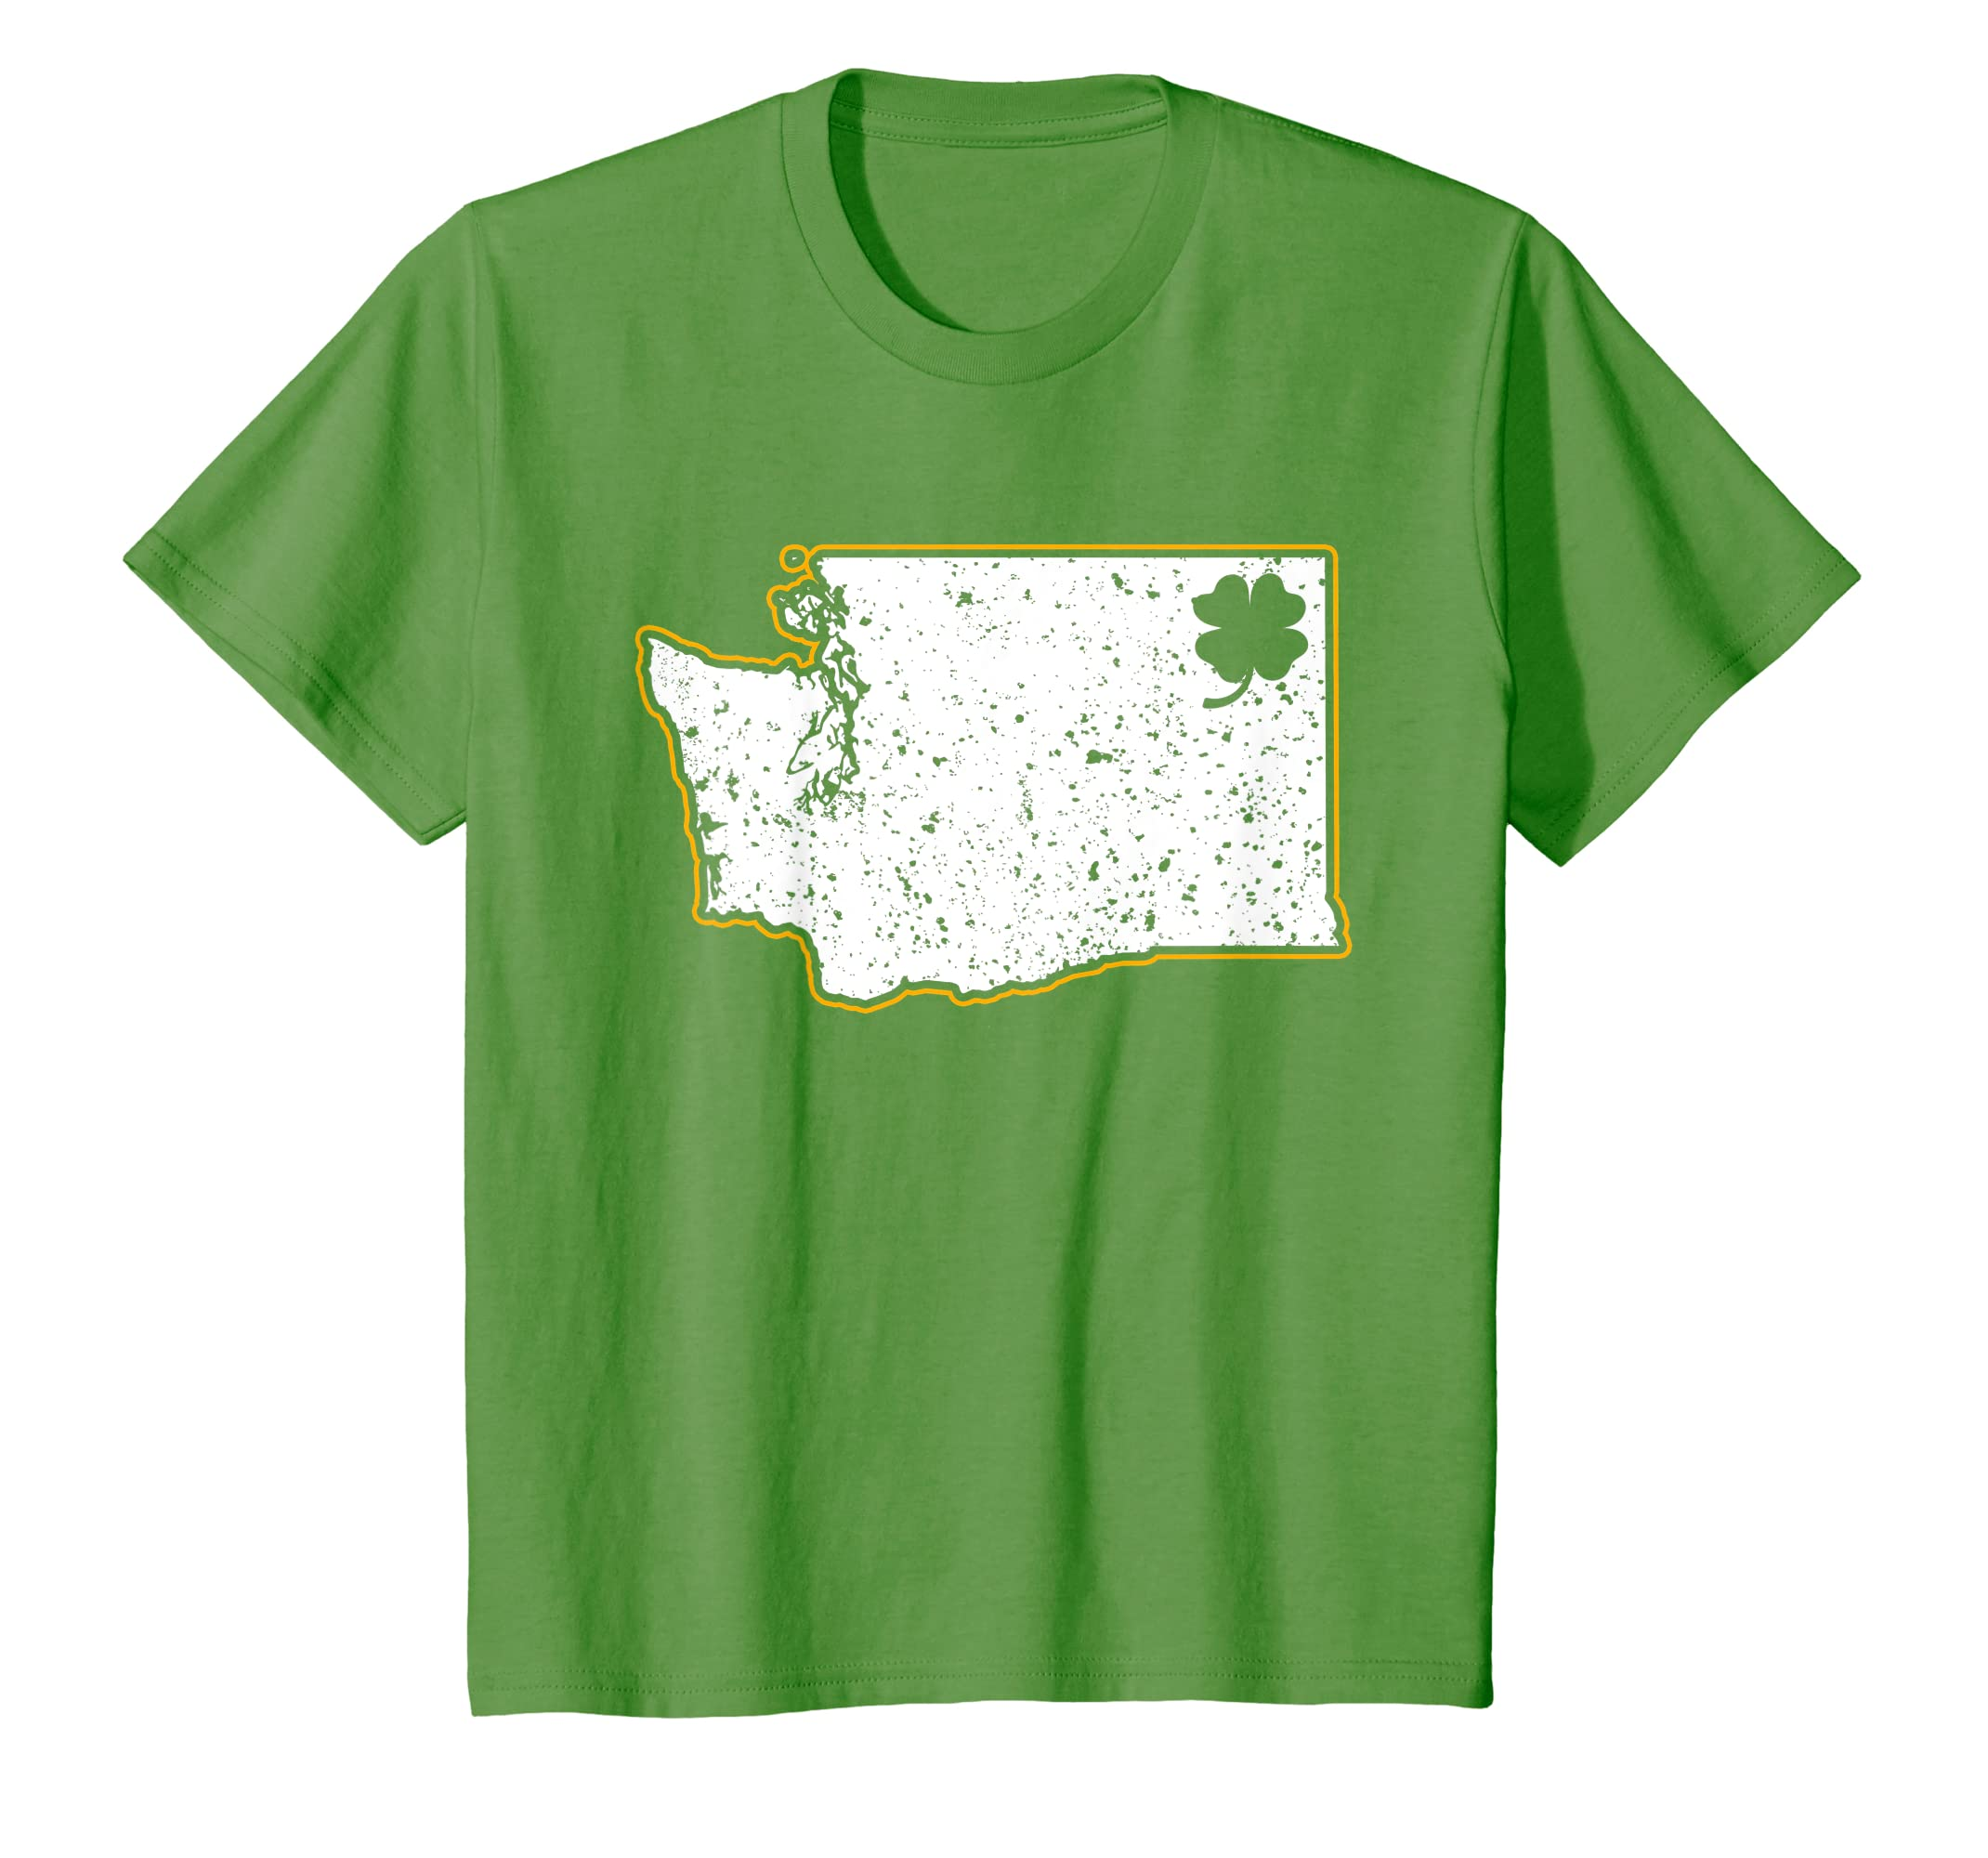 Amazon.com: St Patrick's Day Washington State Map Irish ... on route 90 map washington, interstate 90 map washington, seattle map washington, i-405 map washington, i-5 map washington, highway 20 map washington, i-90 wamap, interstate 5 map washington, i90 map washington,